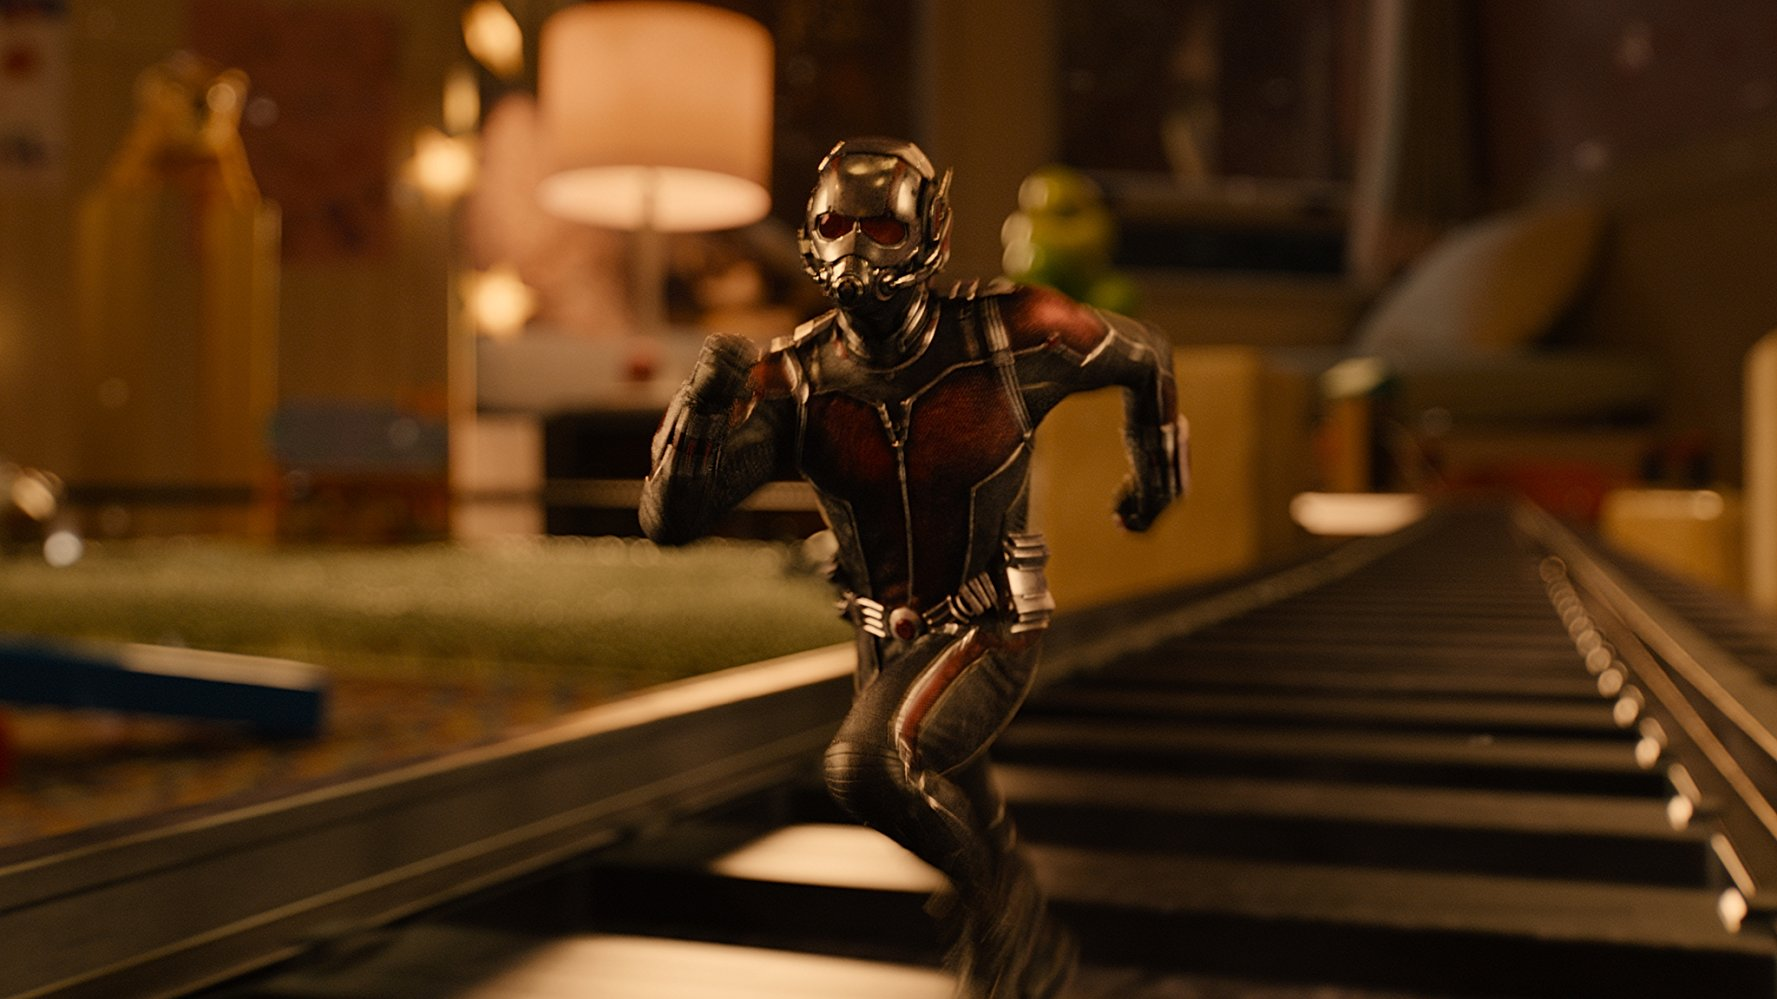 Ant-man running on a train track